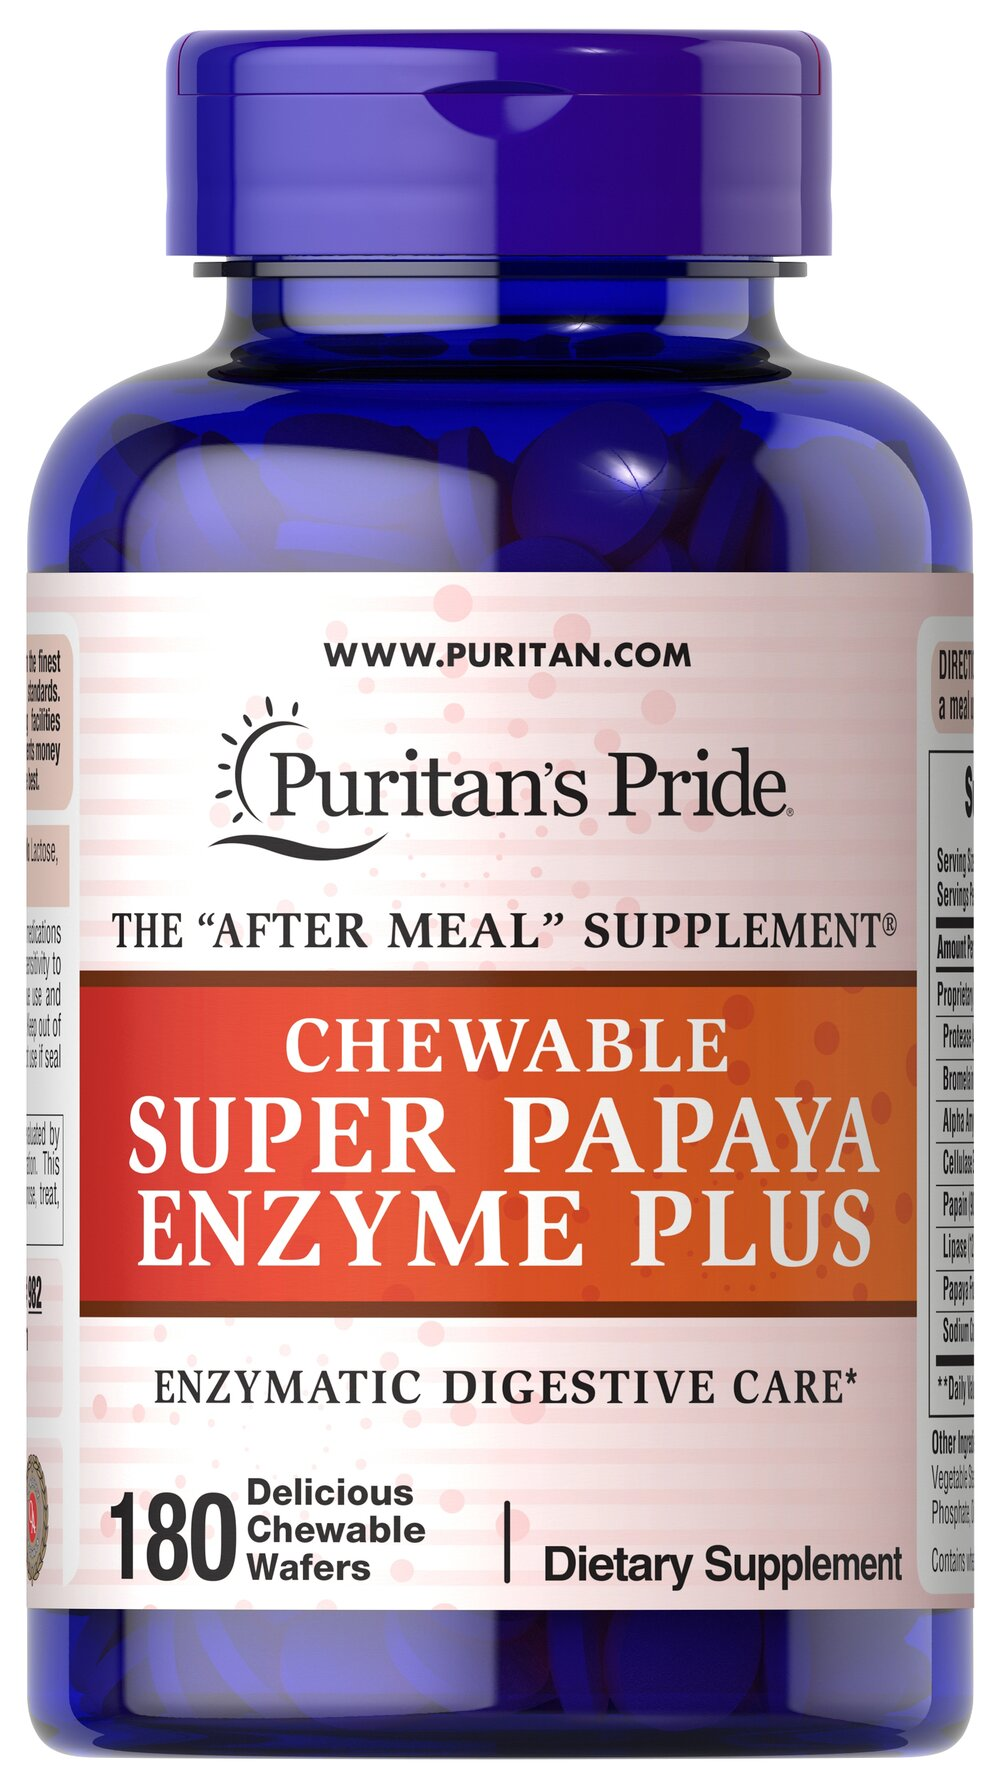 Chewable Super Papaya Enzyme Plus <p>These delicious tablets are made from 100% natural ingredients in a base containing peppermint and chlorophyll (for refreshing taste and sweet breath).</p><p>Papain is a proteolytic enzyme and a popular ingredient in dietary supplements used for digestion.**</p><p>Taken after meals, it is a perfect natural supplement that may assist in digestion. **</p> 180 Chewables  $13.99